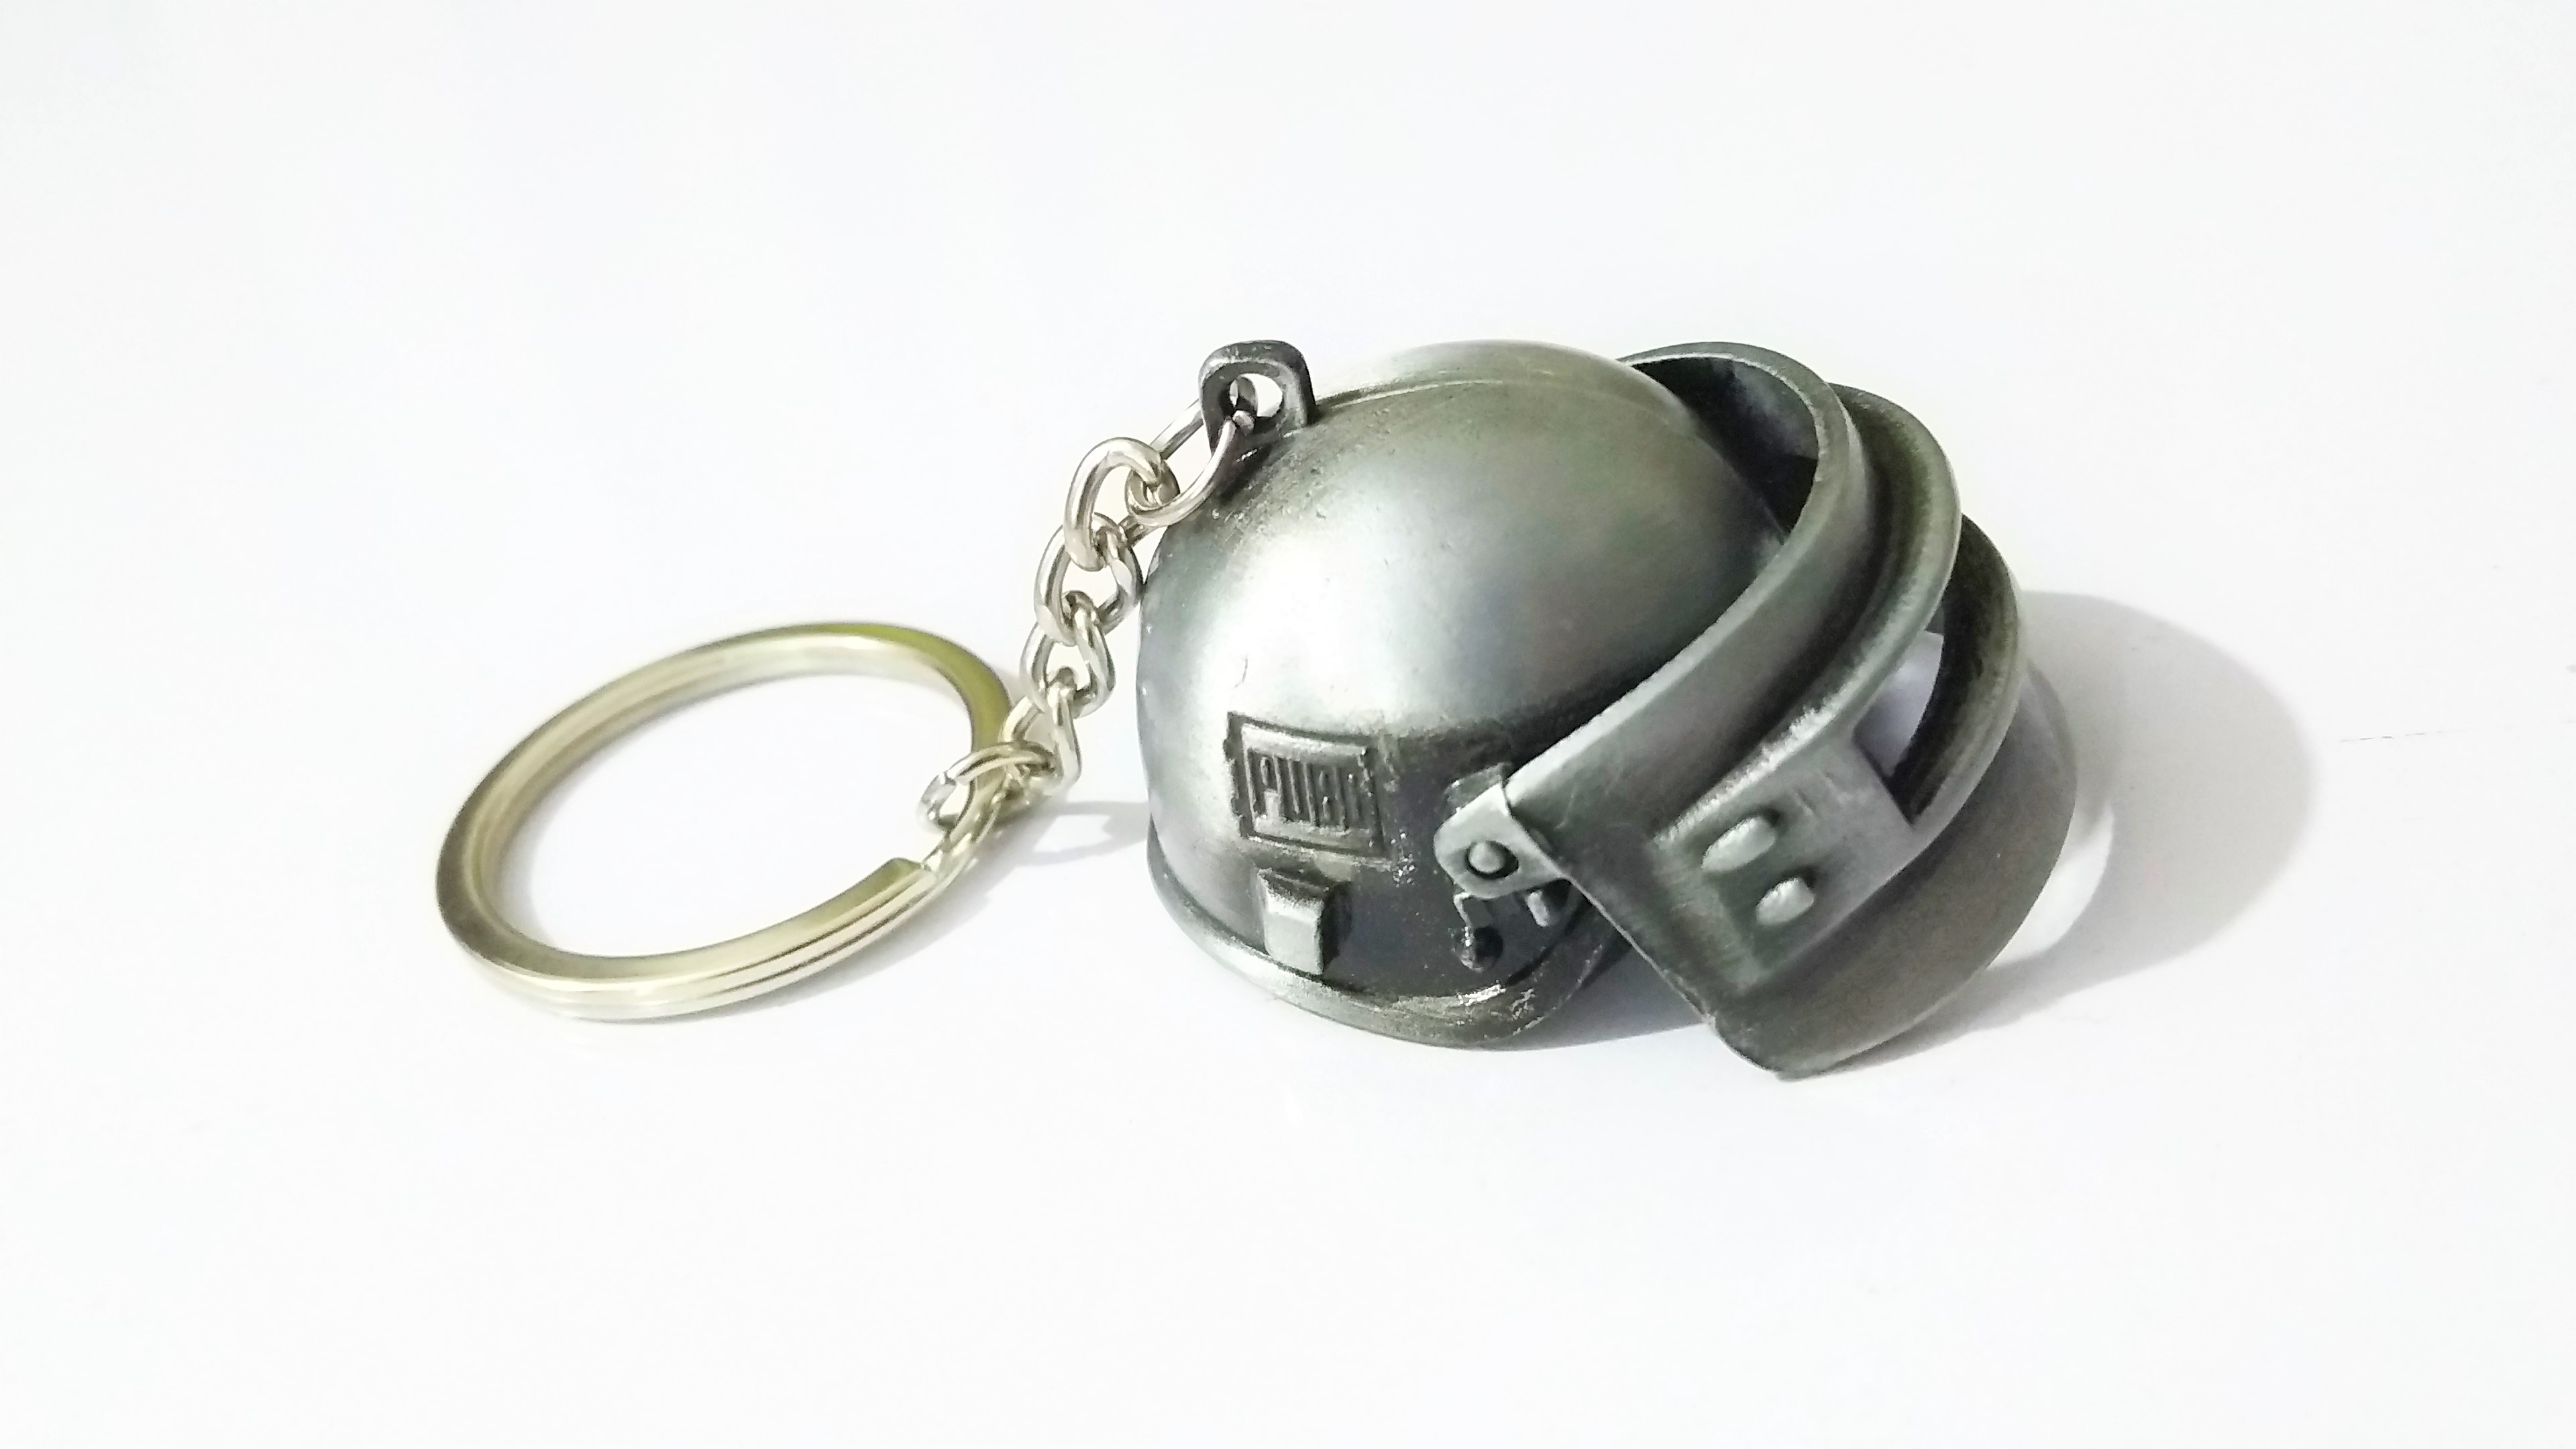 SILVER - PUBG - LEVEL 3 - HELMET Key Chain